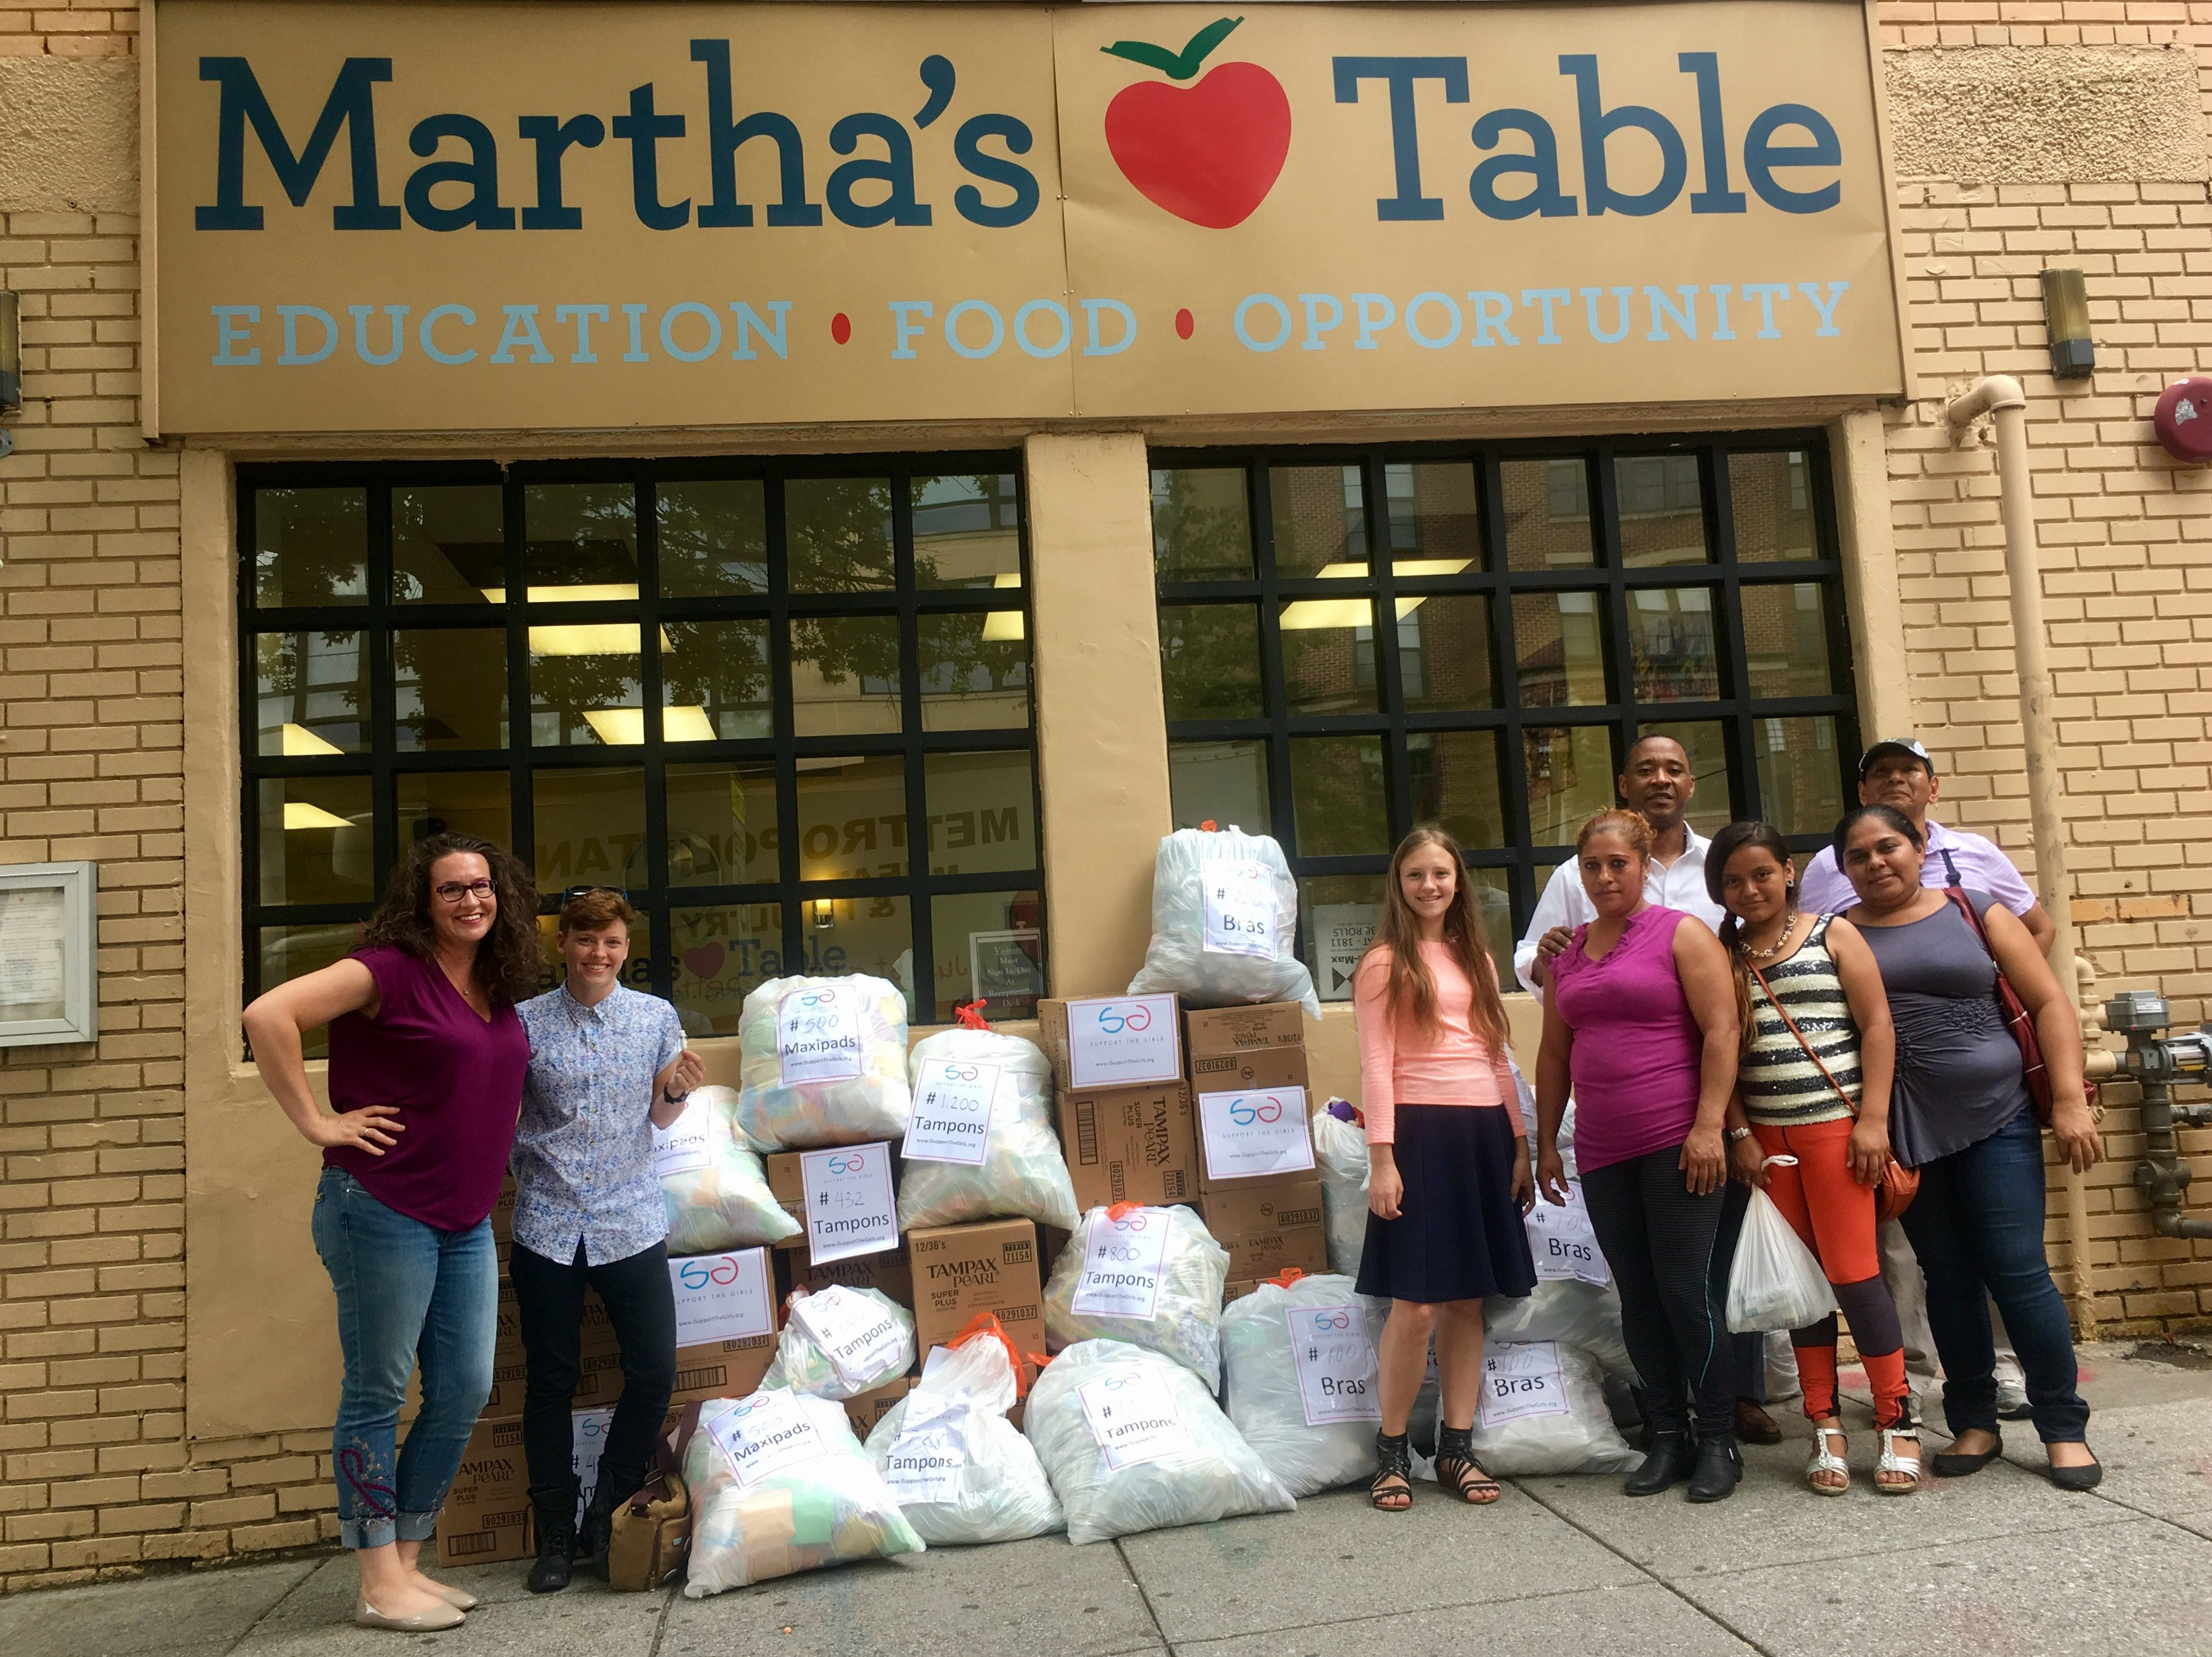 Donations given to Martha's Table in Washington, DC